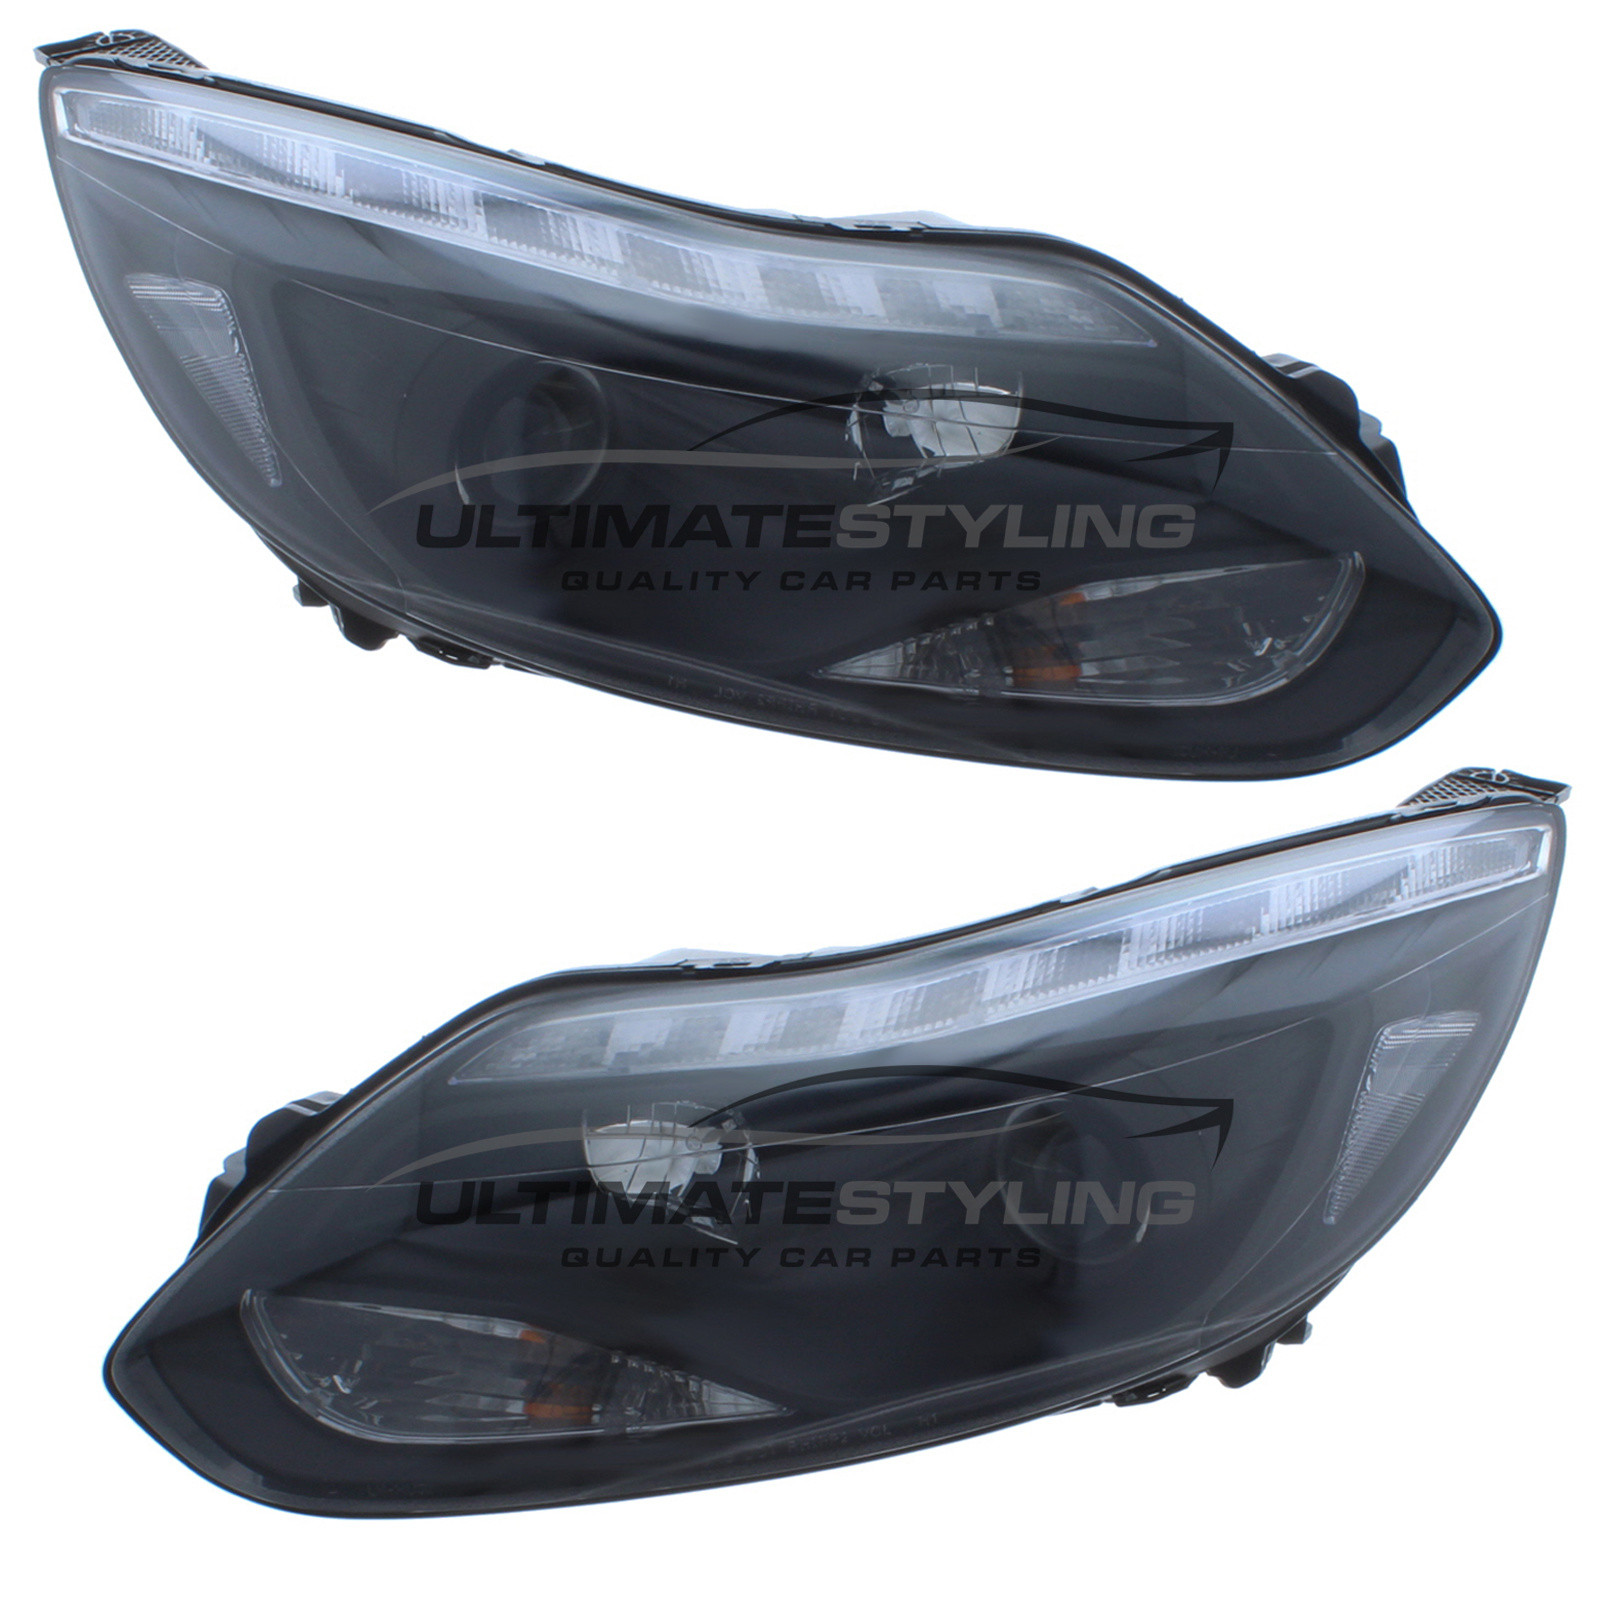 Ford Focus Custom Performance Headlights Projector Type Led Daytime Running Lights Drl Halogen